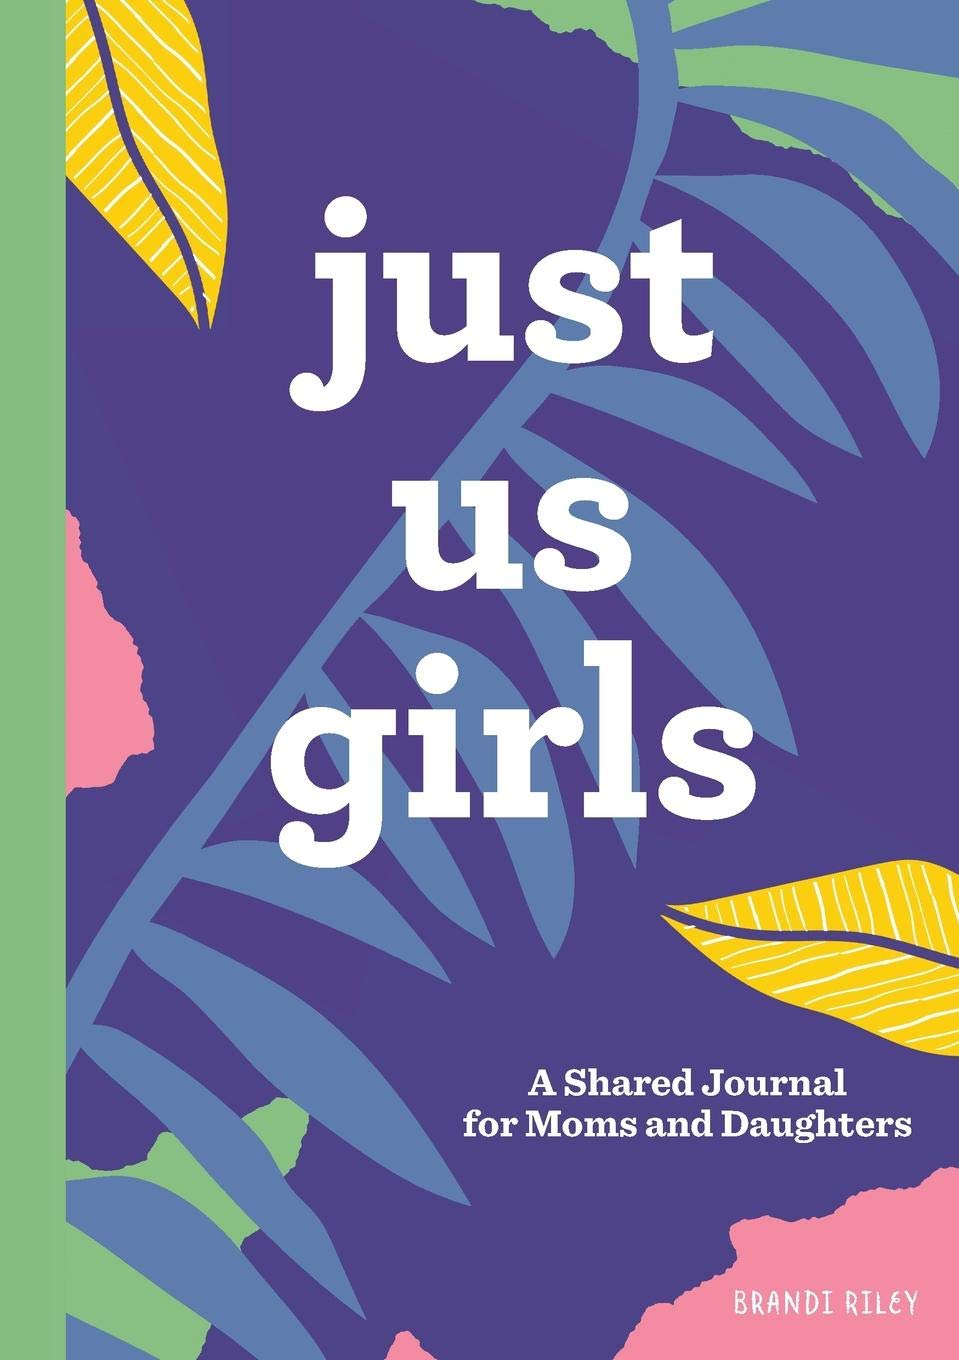 Just Us Girls: A Shared Journal for Moms and Daughters